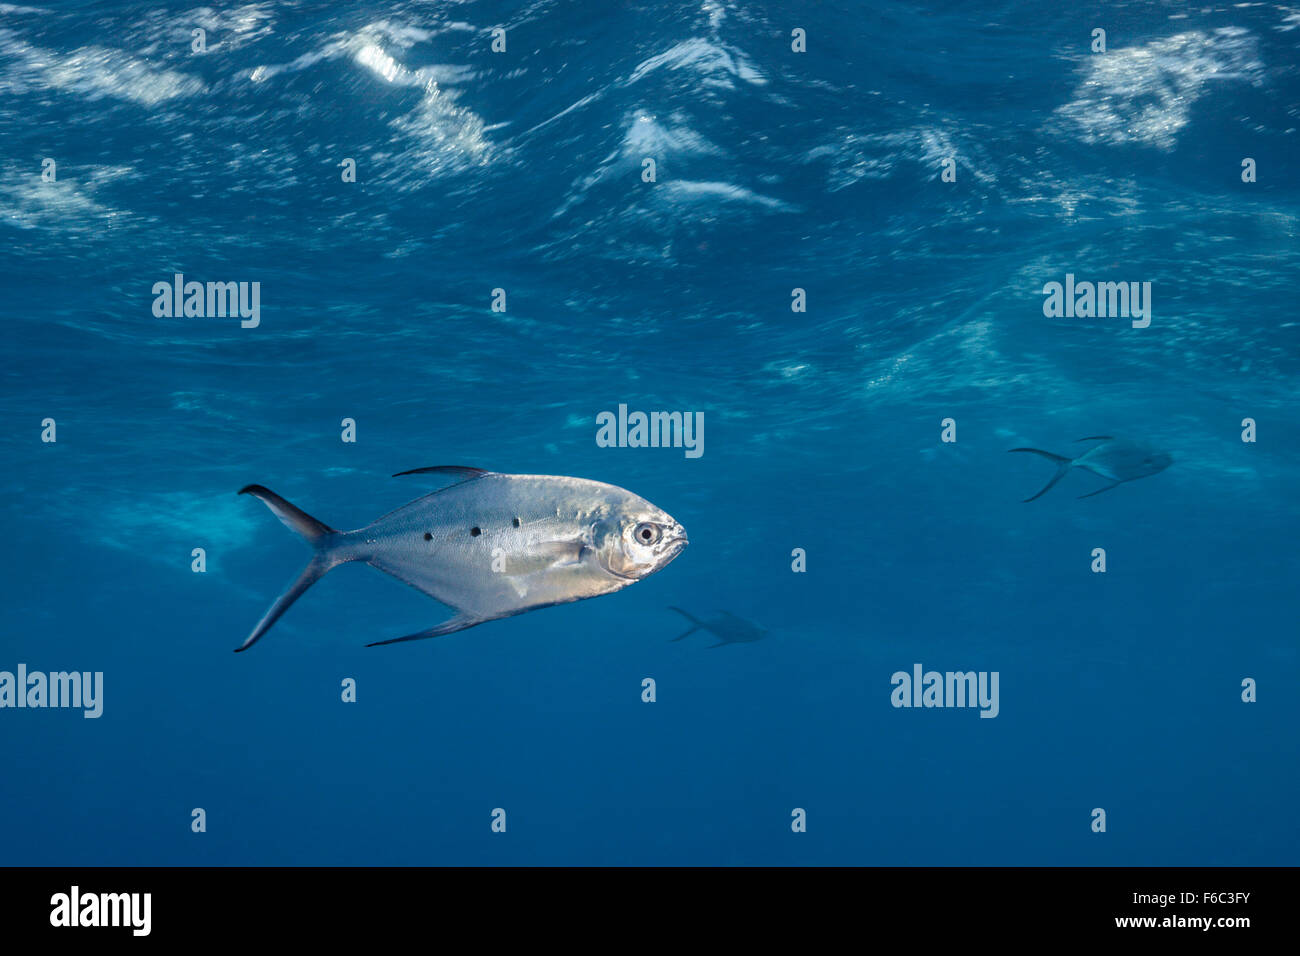 Black spotted Pompano, Trachinotus bailloni, Great Barrier Reef, Australia - Stock Image